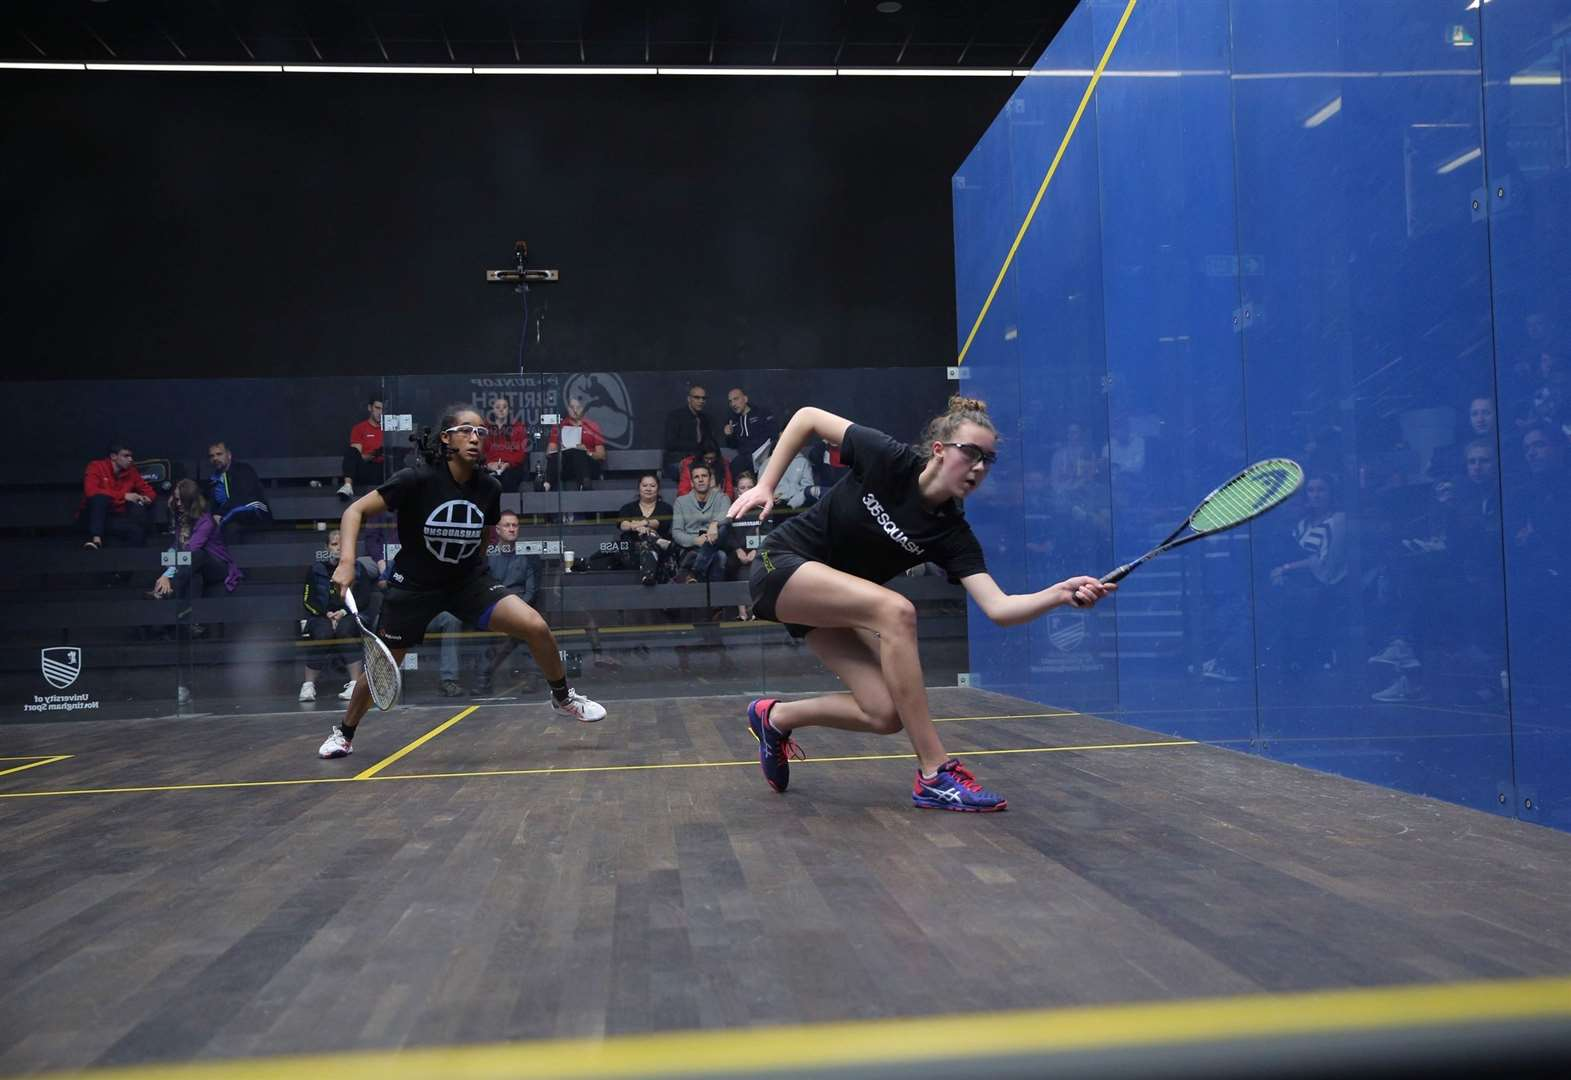 Third place at nationals for Moreton Hall squash talent